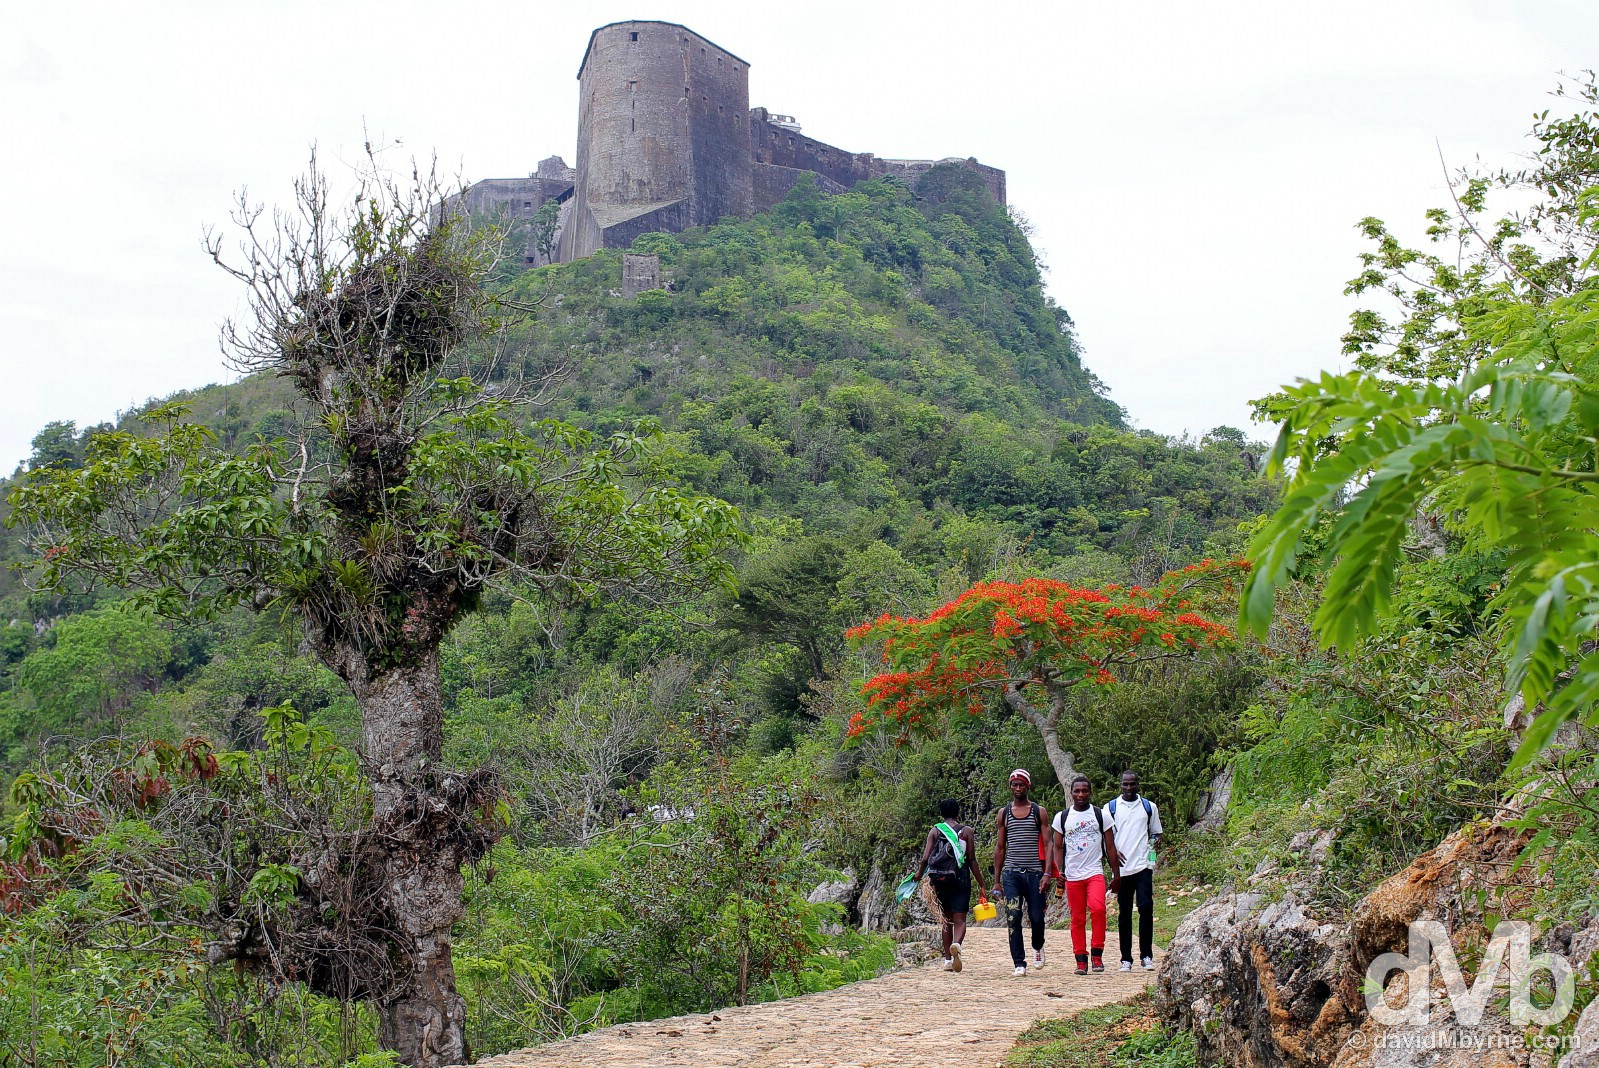 On the path to the UNESCO-listed Citadelle Laferrière in northern Haiti, Hispaniola, Greater Antilles. May 22, 2015.